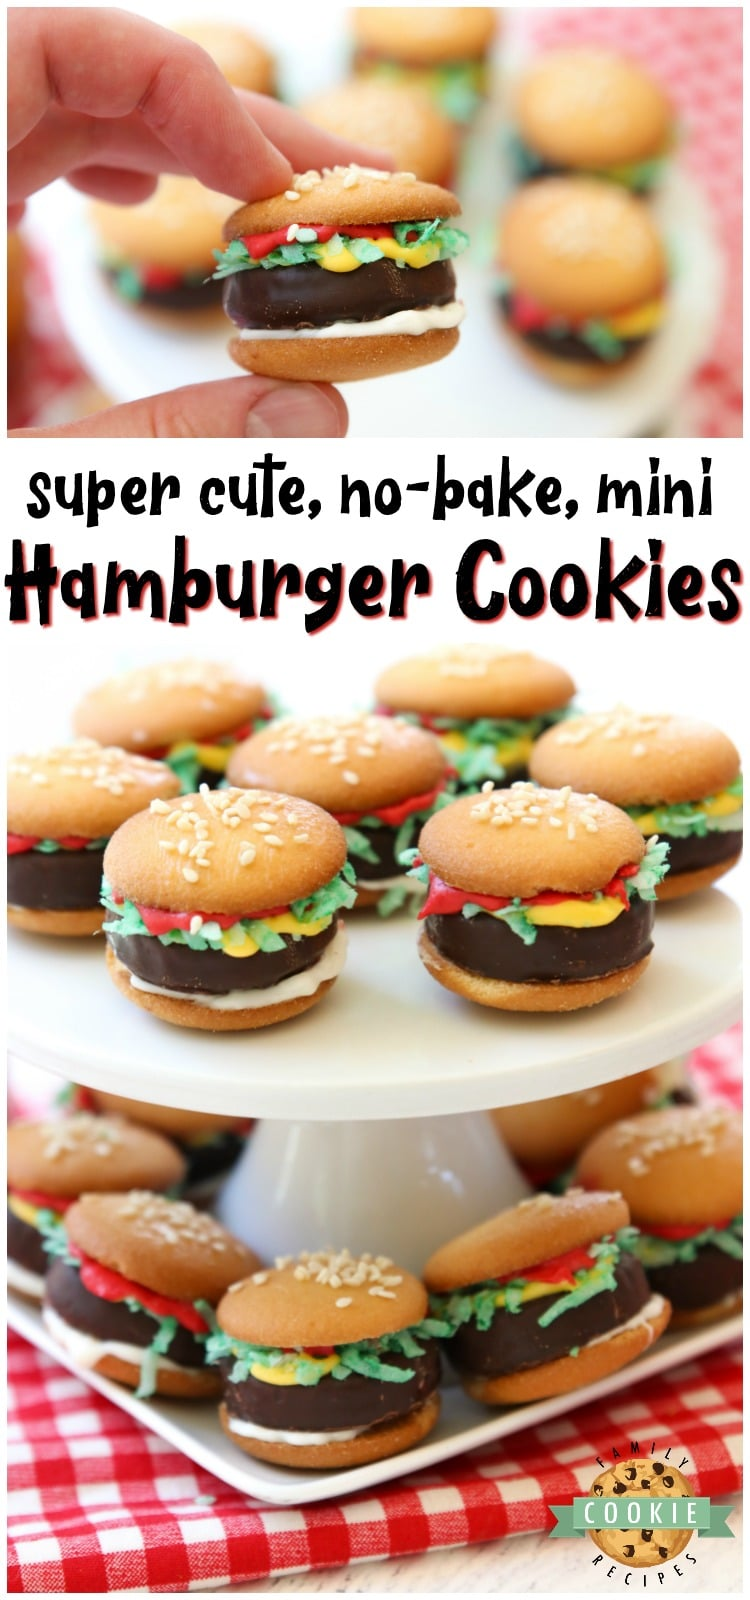 Mini Hamburger Cookies made from Nilla Wafers, York Peppermint Patties and melted candy! Super cute no-bake hamburger cookies that kids go crazy over! via @familycookierecipes